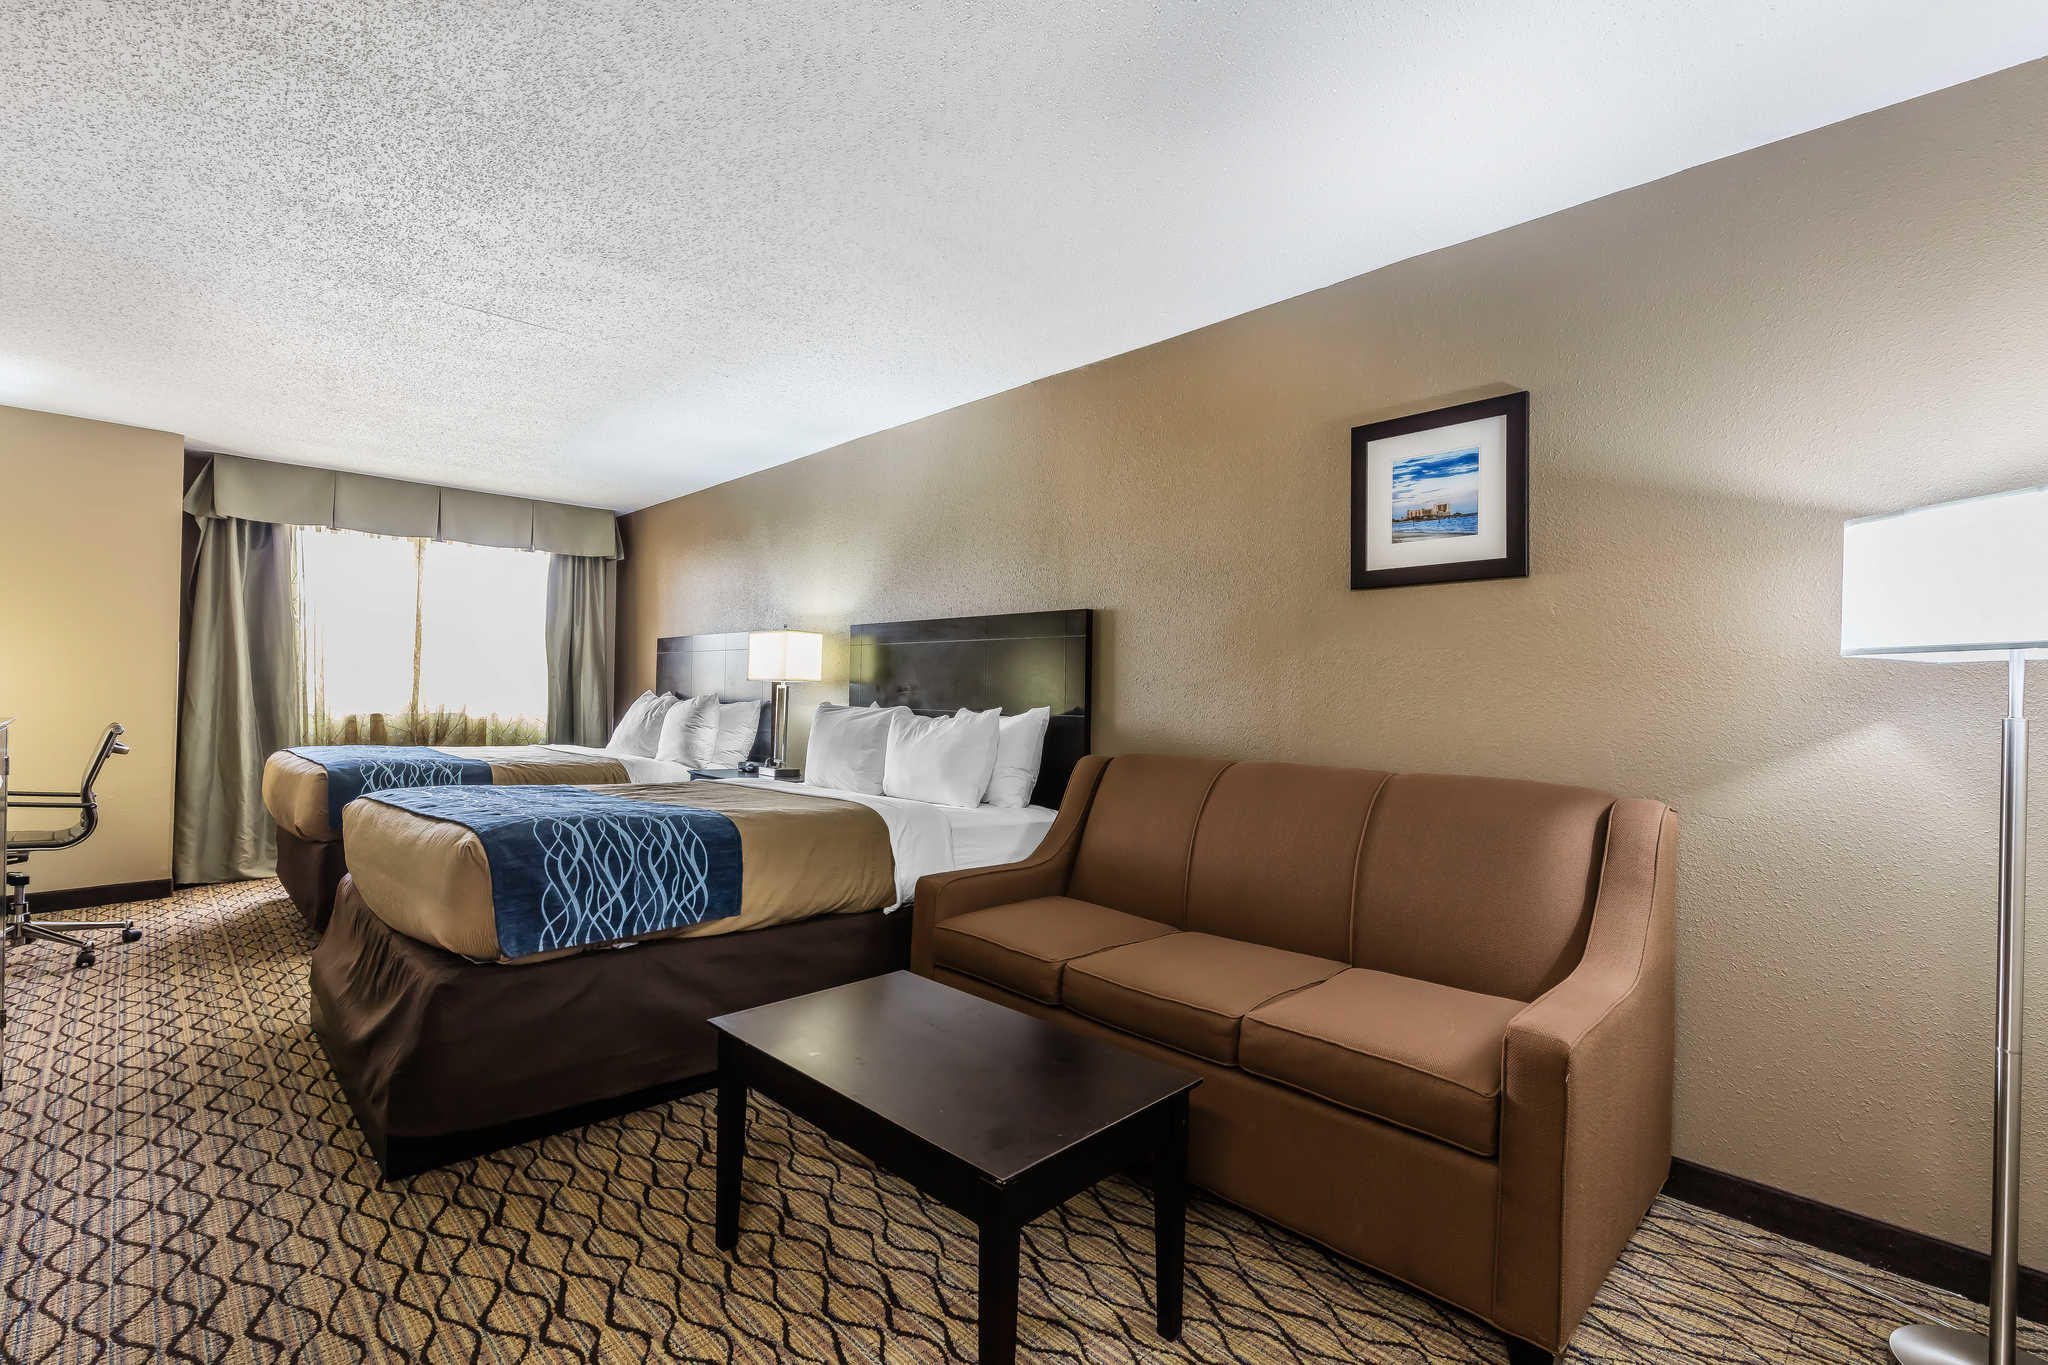 bay inn and suites, Bay Minette, AL 36507-2715 - MapQuest